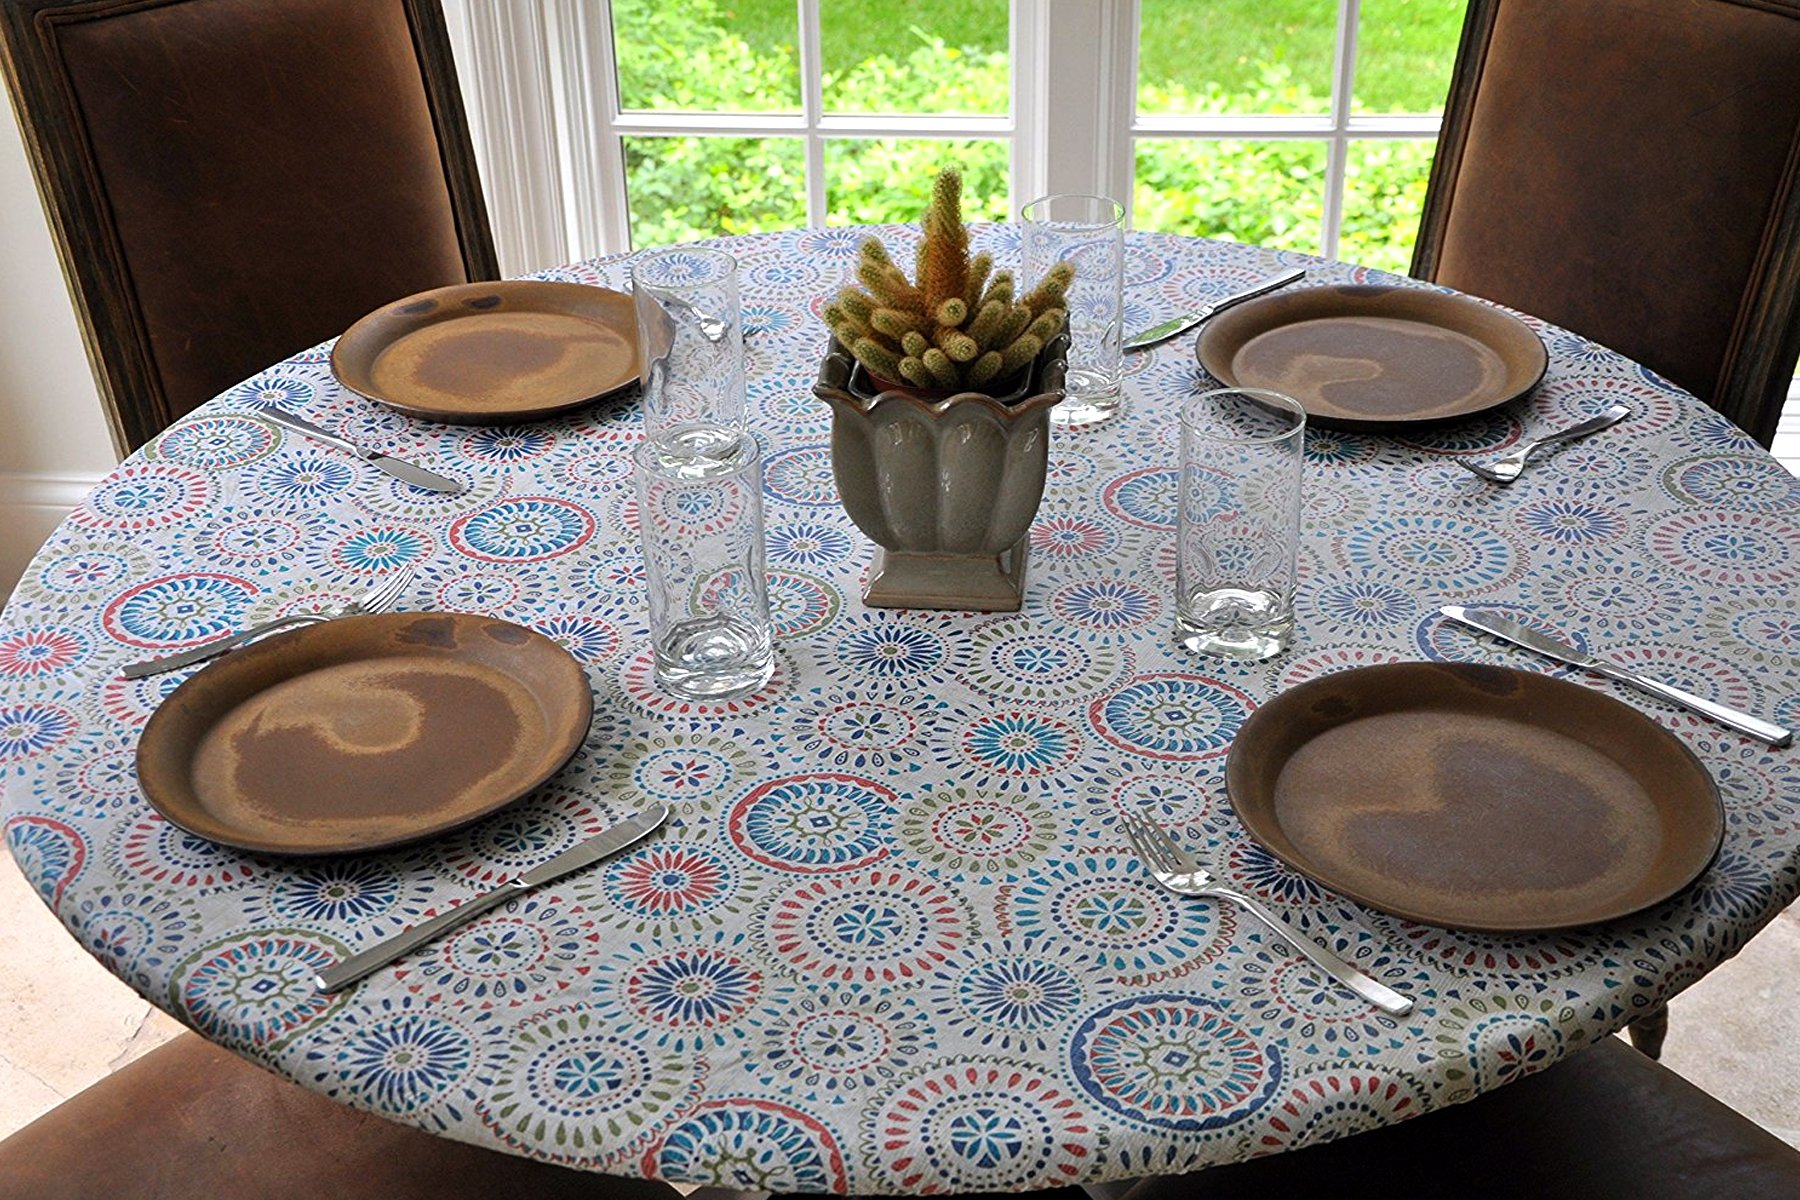 Elastic Flannel Backed Vinyl Fitted Table Cover MULTI-COLOR GEOMETRIC Pattern - Large Round - Fits tables 45'' to 58'' round - Elastic Edged